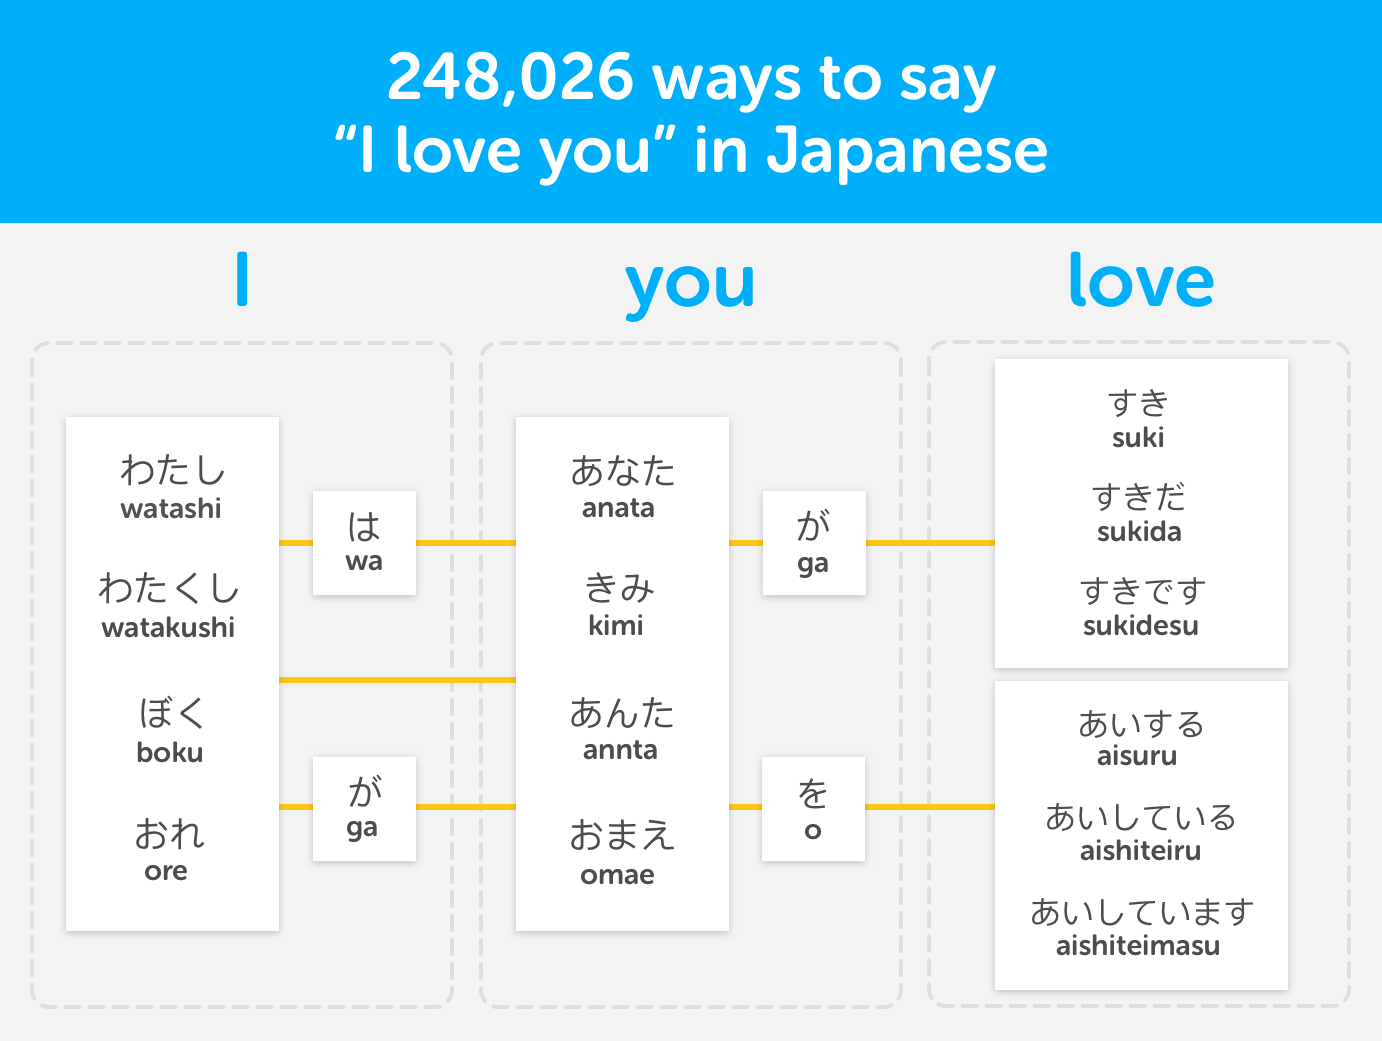 248,026 ways to say 'I love you' in Japanese